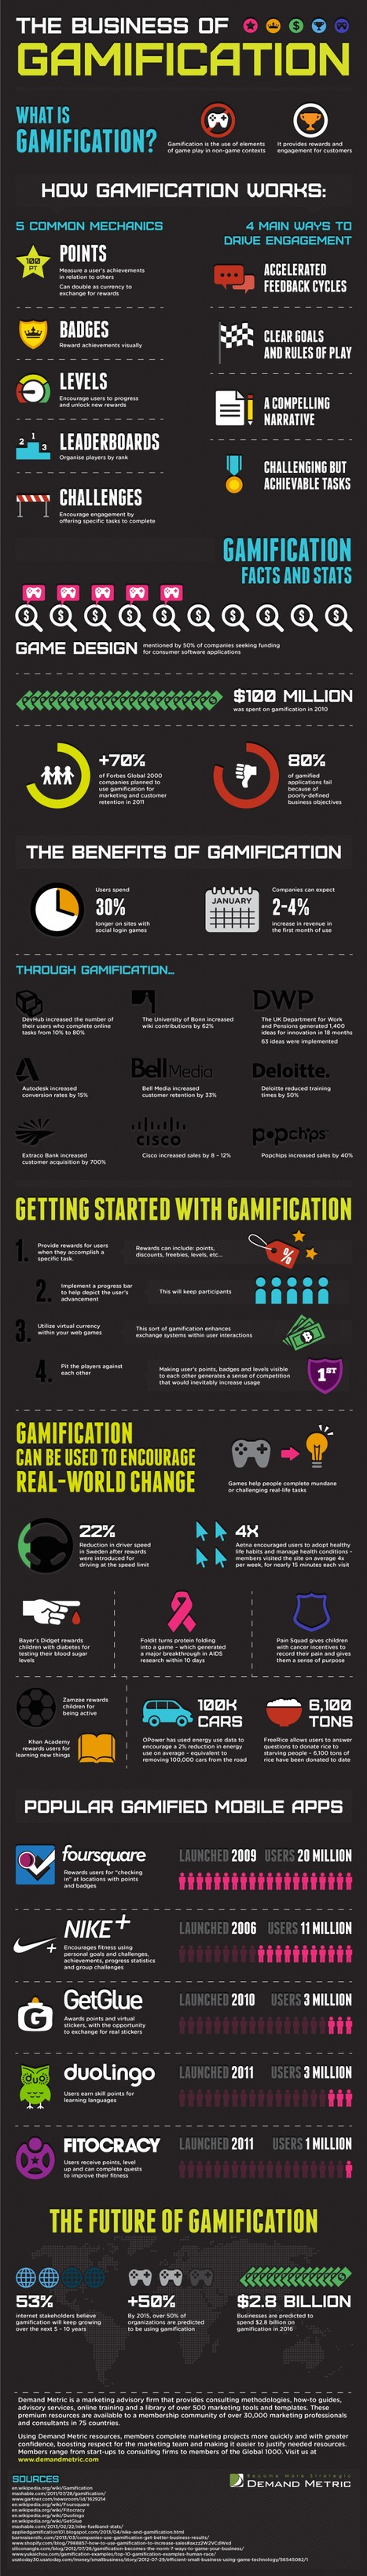 The Business of Gamification | Infographic via Visual.ly | Contests and Games Revolution | Scoop.it